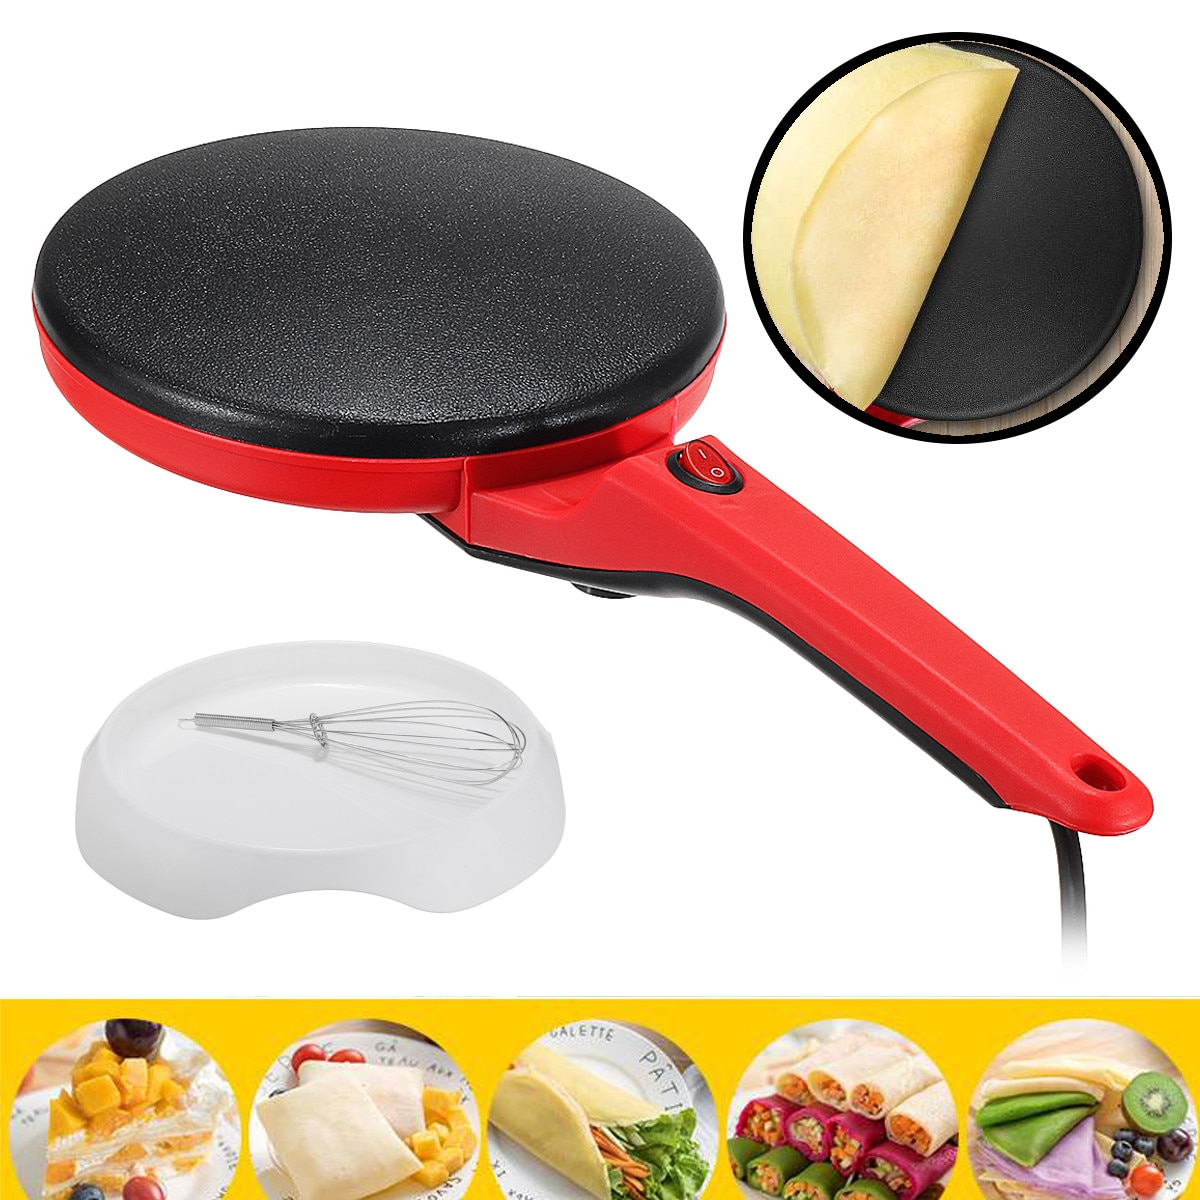 Household Non-Stick Crepe Maker Portable Pan Pie Electric Pancake Cake Machine Frying Griddle Machine Kitchen Baking Tools 220V electric crepe maker 600w non stick pizza pancake machine griddle baking pan cake machine kitchen appliances